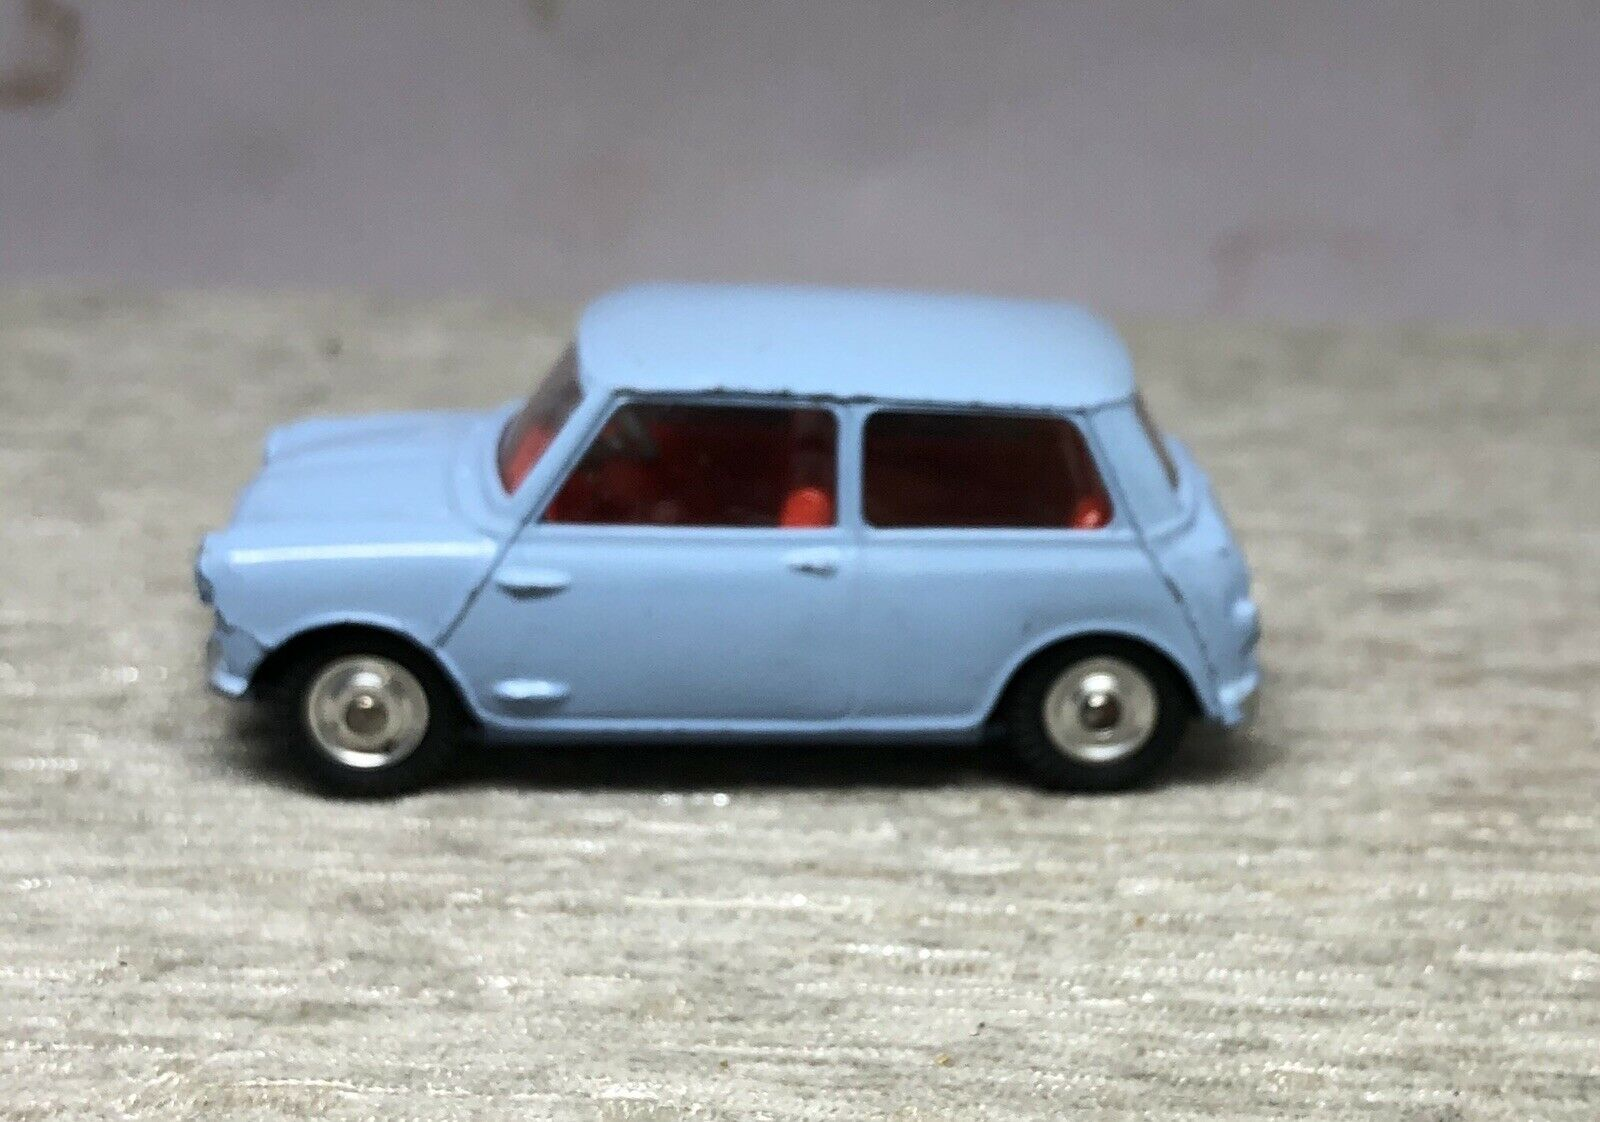 CORGI 226 BMC MORRIS MINI MINOR -1962 - ORIGINAL Very Clean CONDITION